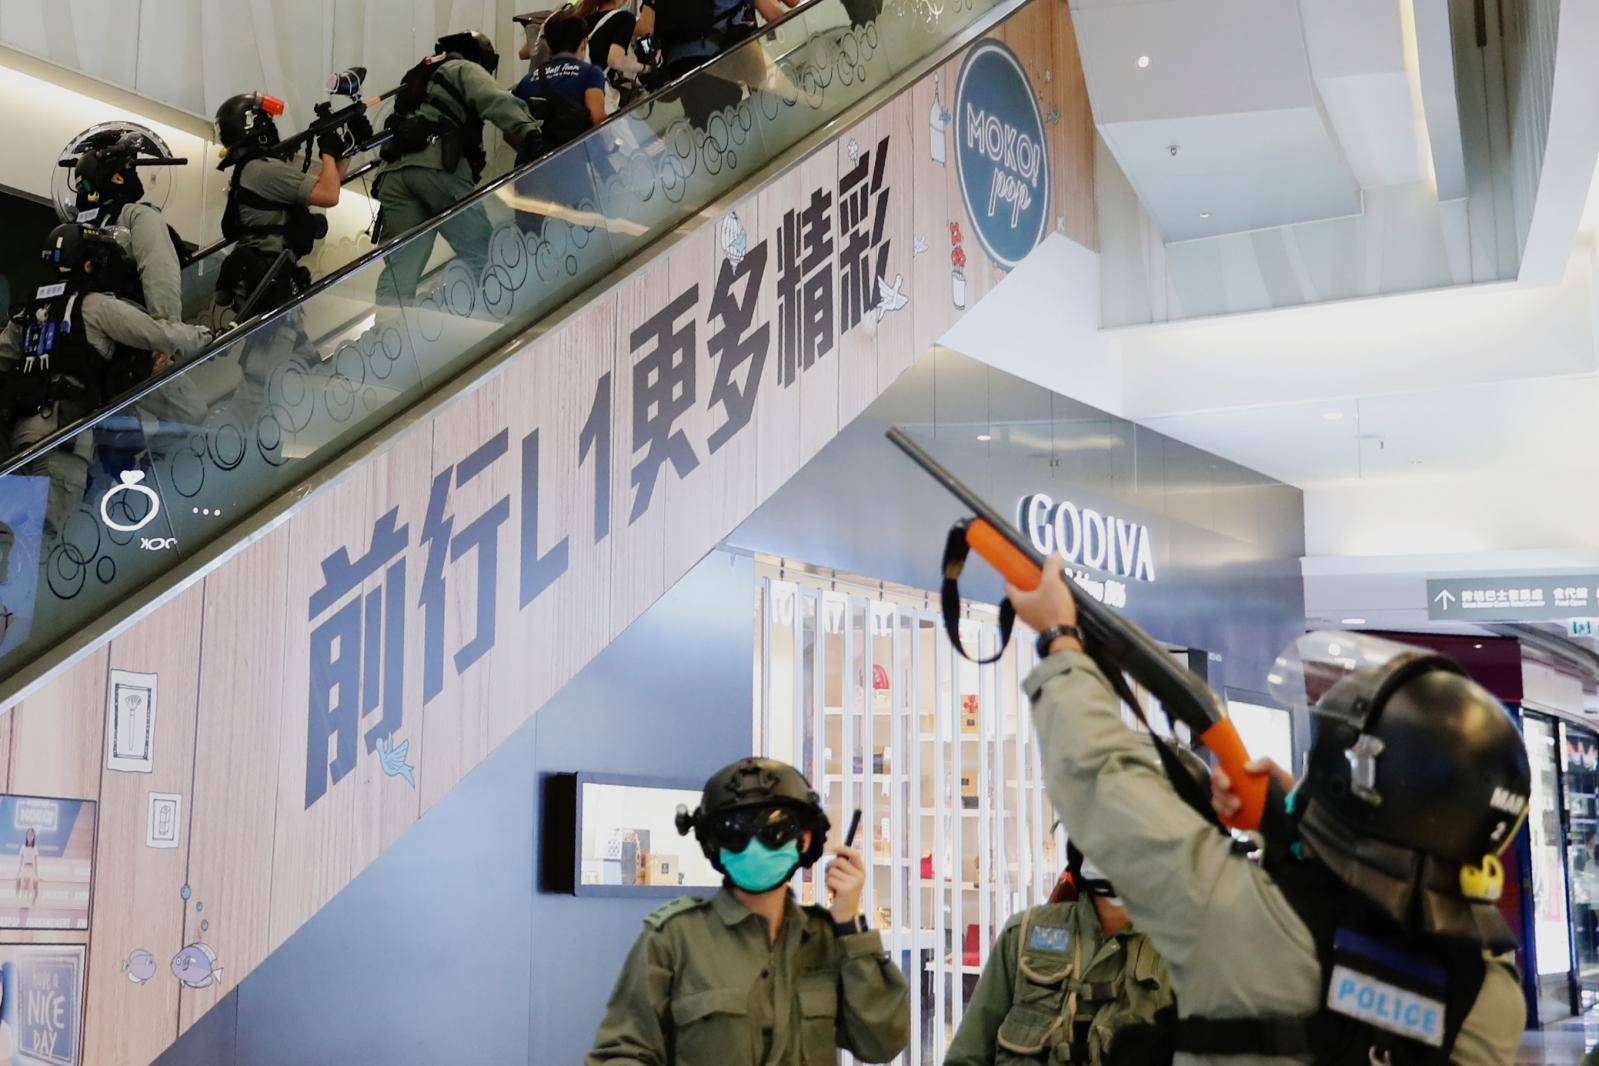 Riot police raise their pepper spray projectile inside a shopping mall as they disperse anti-government protesters during a rally, in Hong Kong